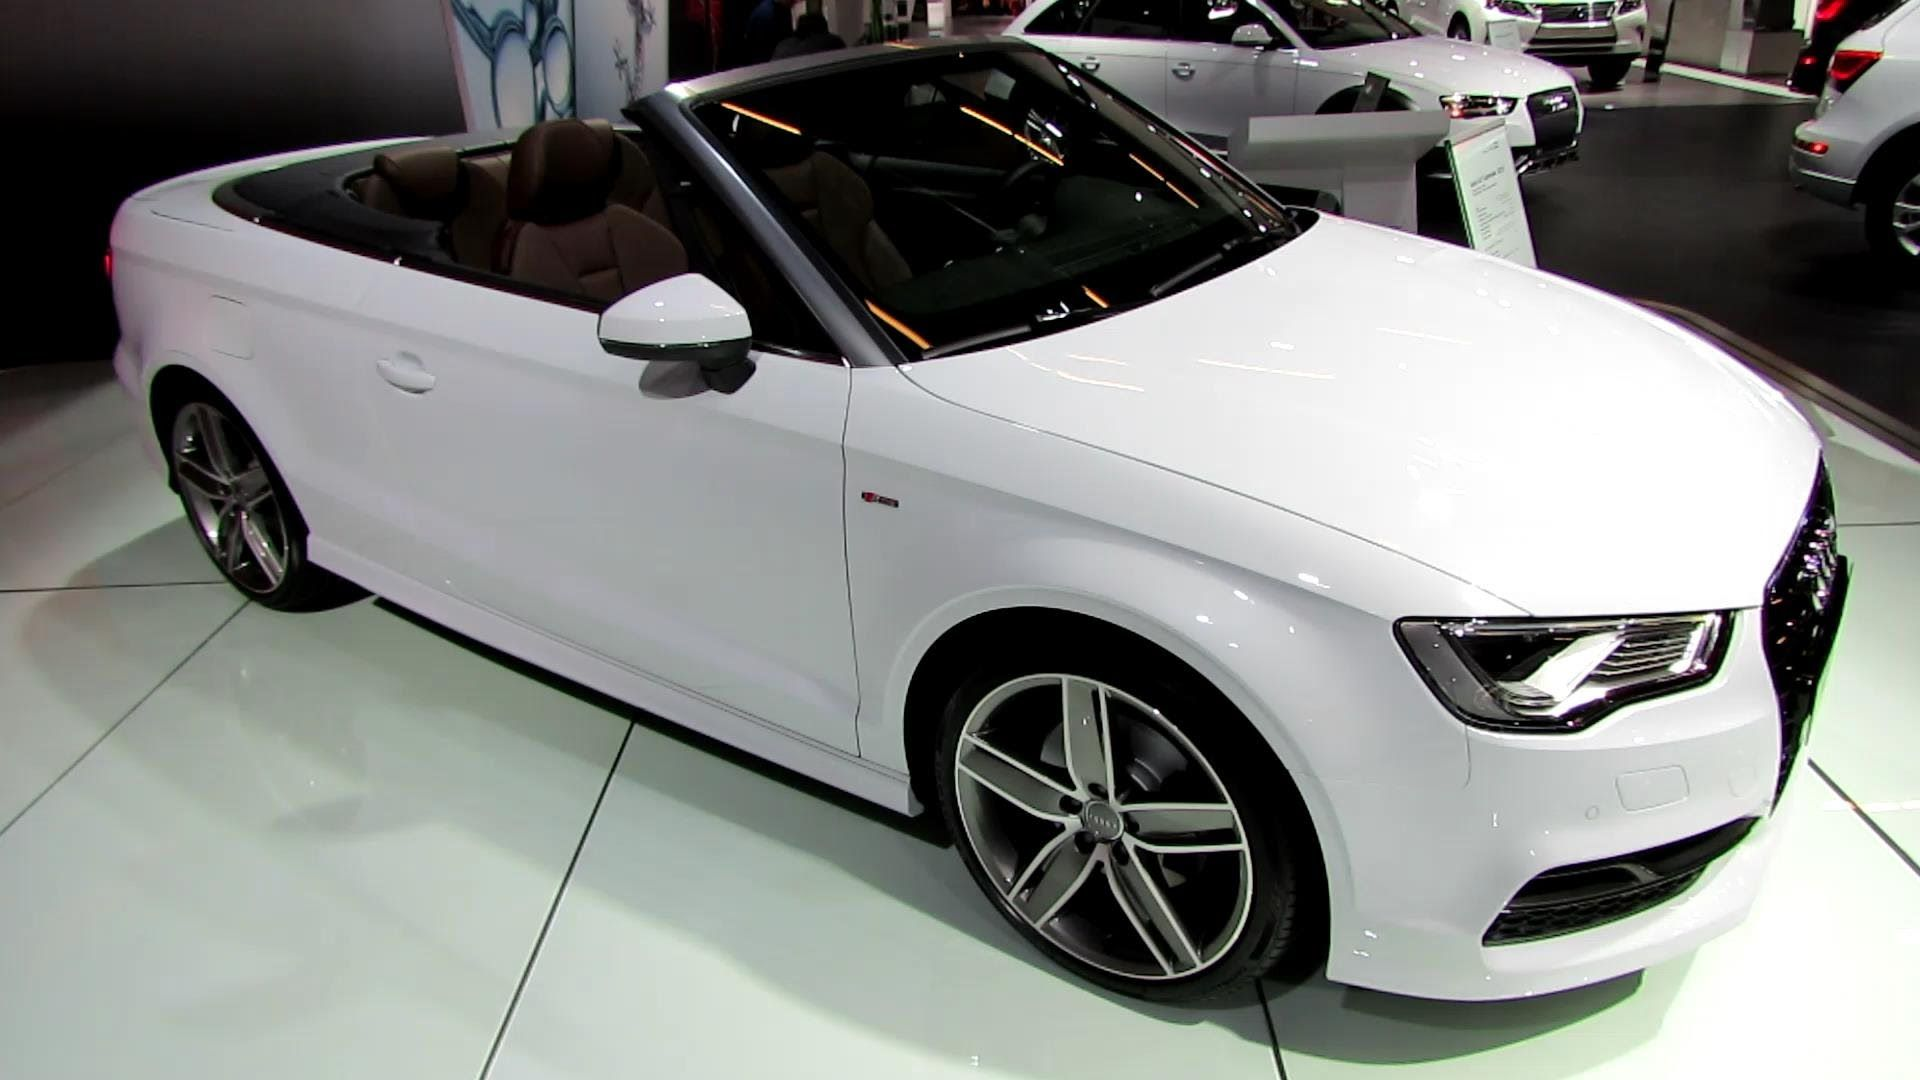 2015 Audi A3 Tfsi S Line Cabriolet Exterior And Interior Walkaround Audi A3 Tfsi Audi A3 Cabriolet Audi